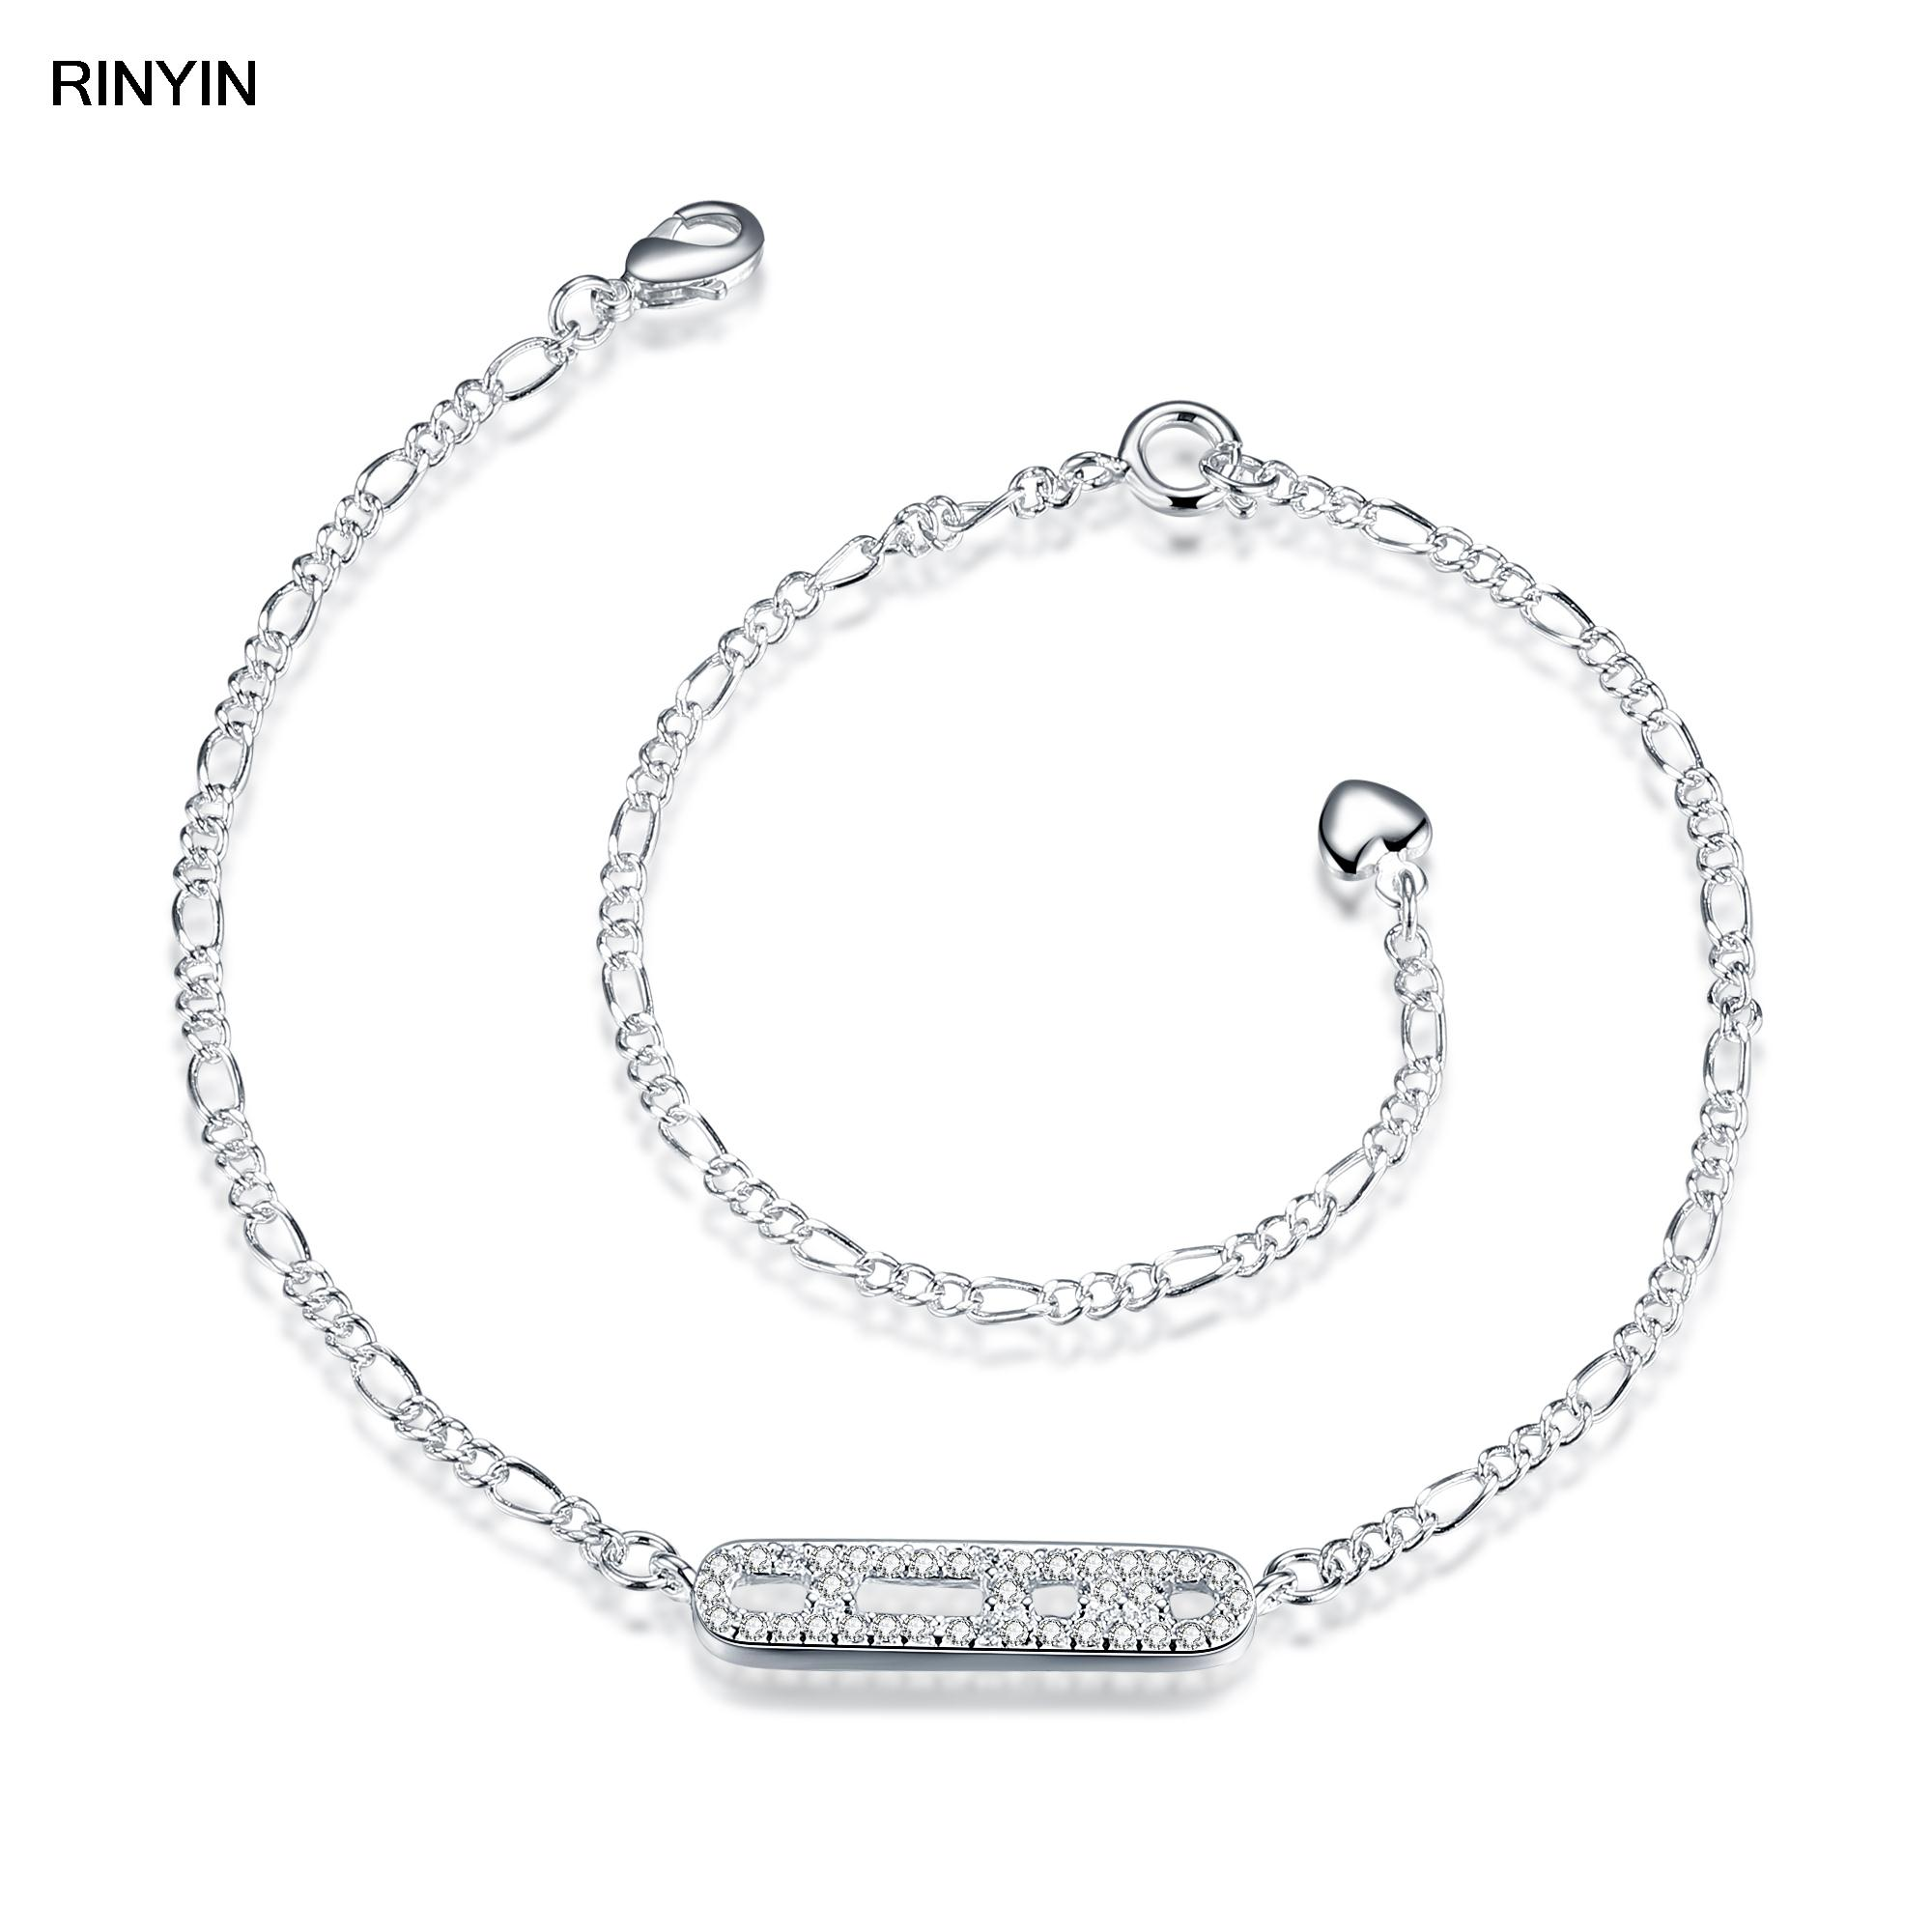 bracelet foot jewellery sandals women ankle chaine anklet chain bracelets elegant for beaded patterns ladies gold barefoot anklets cheville silver